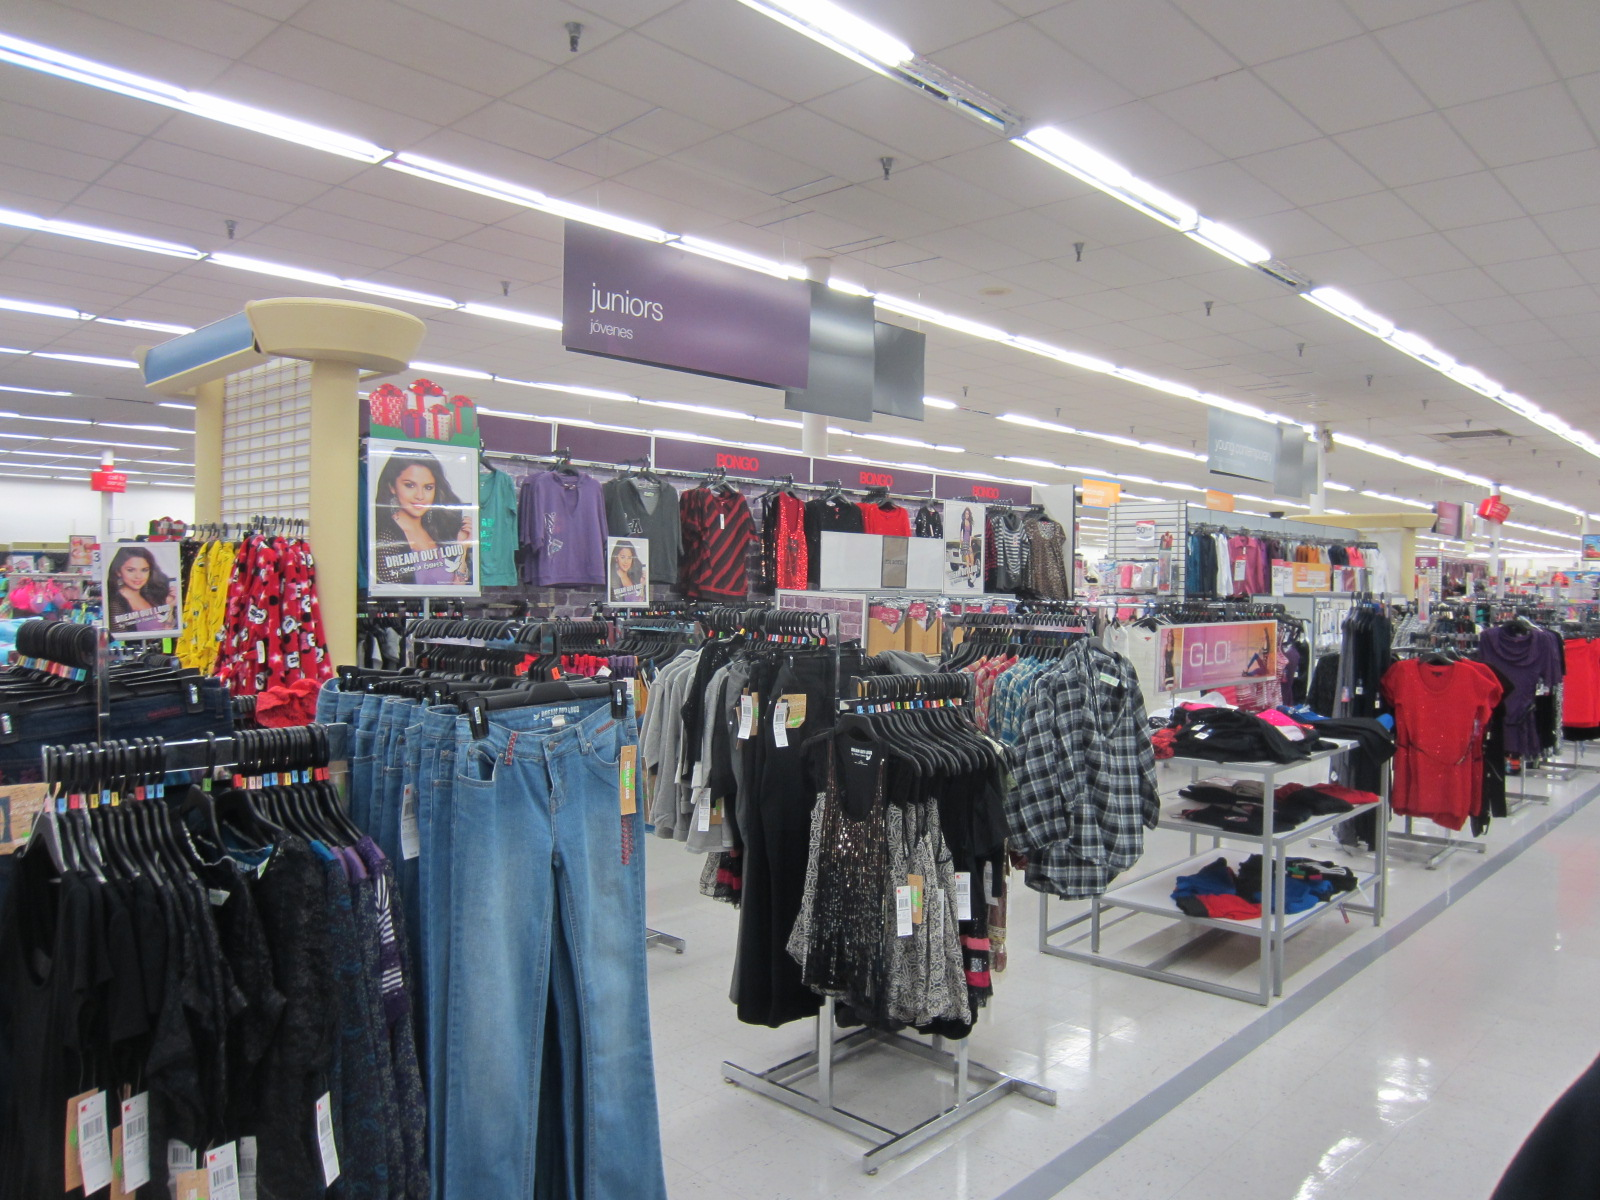 Fashionable women's clothing for your closet. Style is an important part of who you are as a person. Find women's clothing that will create a wardrobe for any taste with Kmart's amazing selection of gorgeous pieces. If you want to experiment with colors and styles, you will find everything you need to revamp your wardrobe.